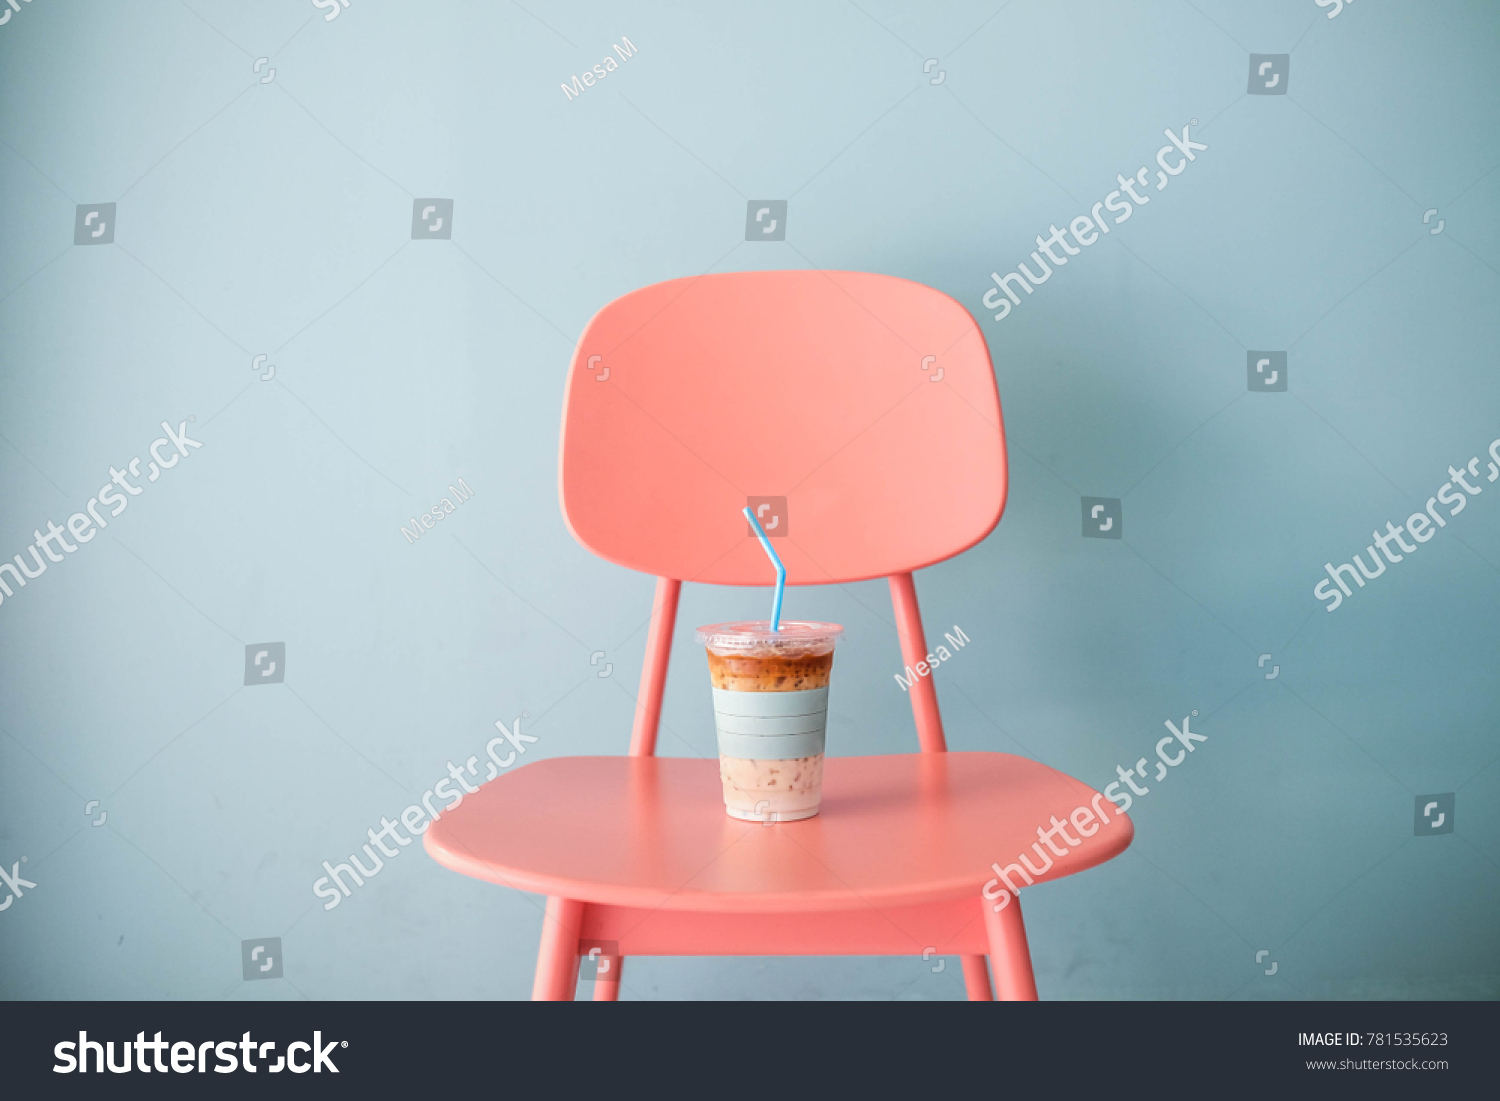 Stock Photography Trends 2018: Pastel Still Life